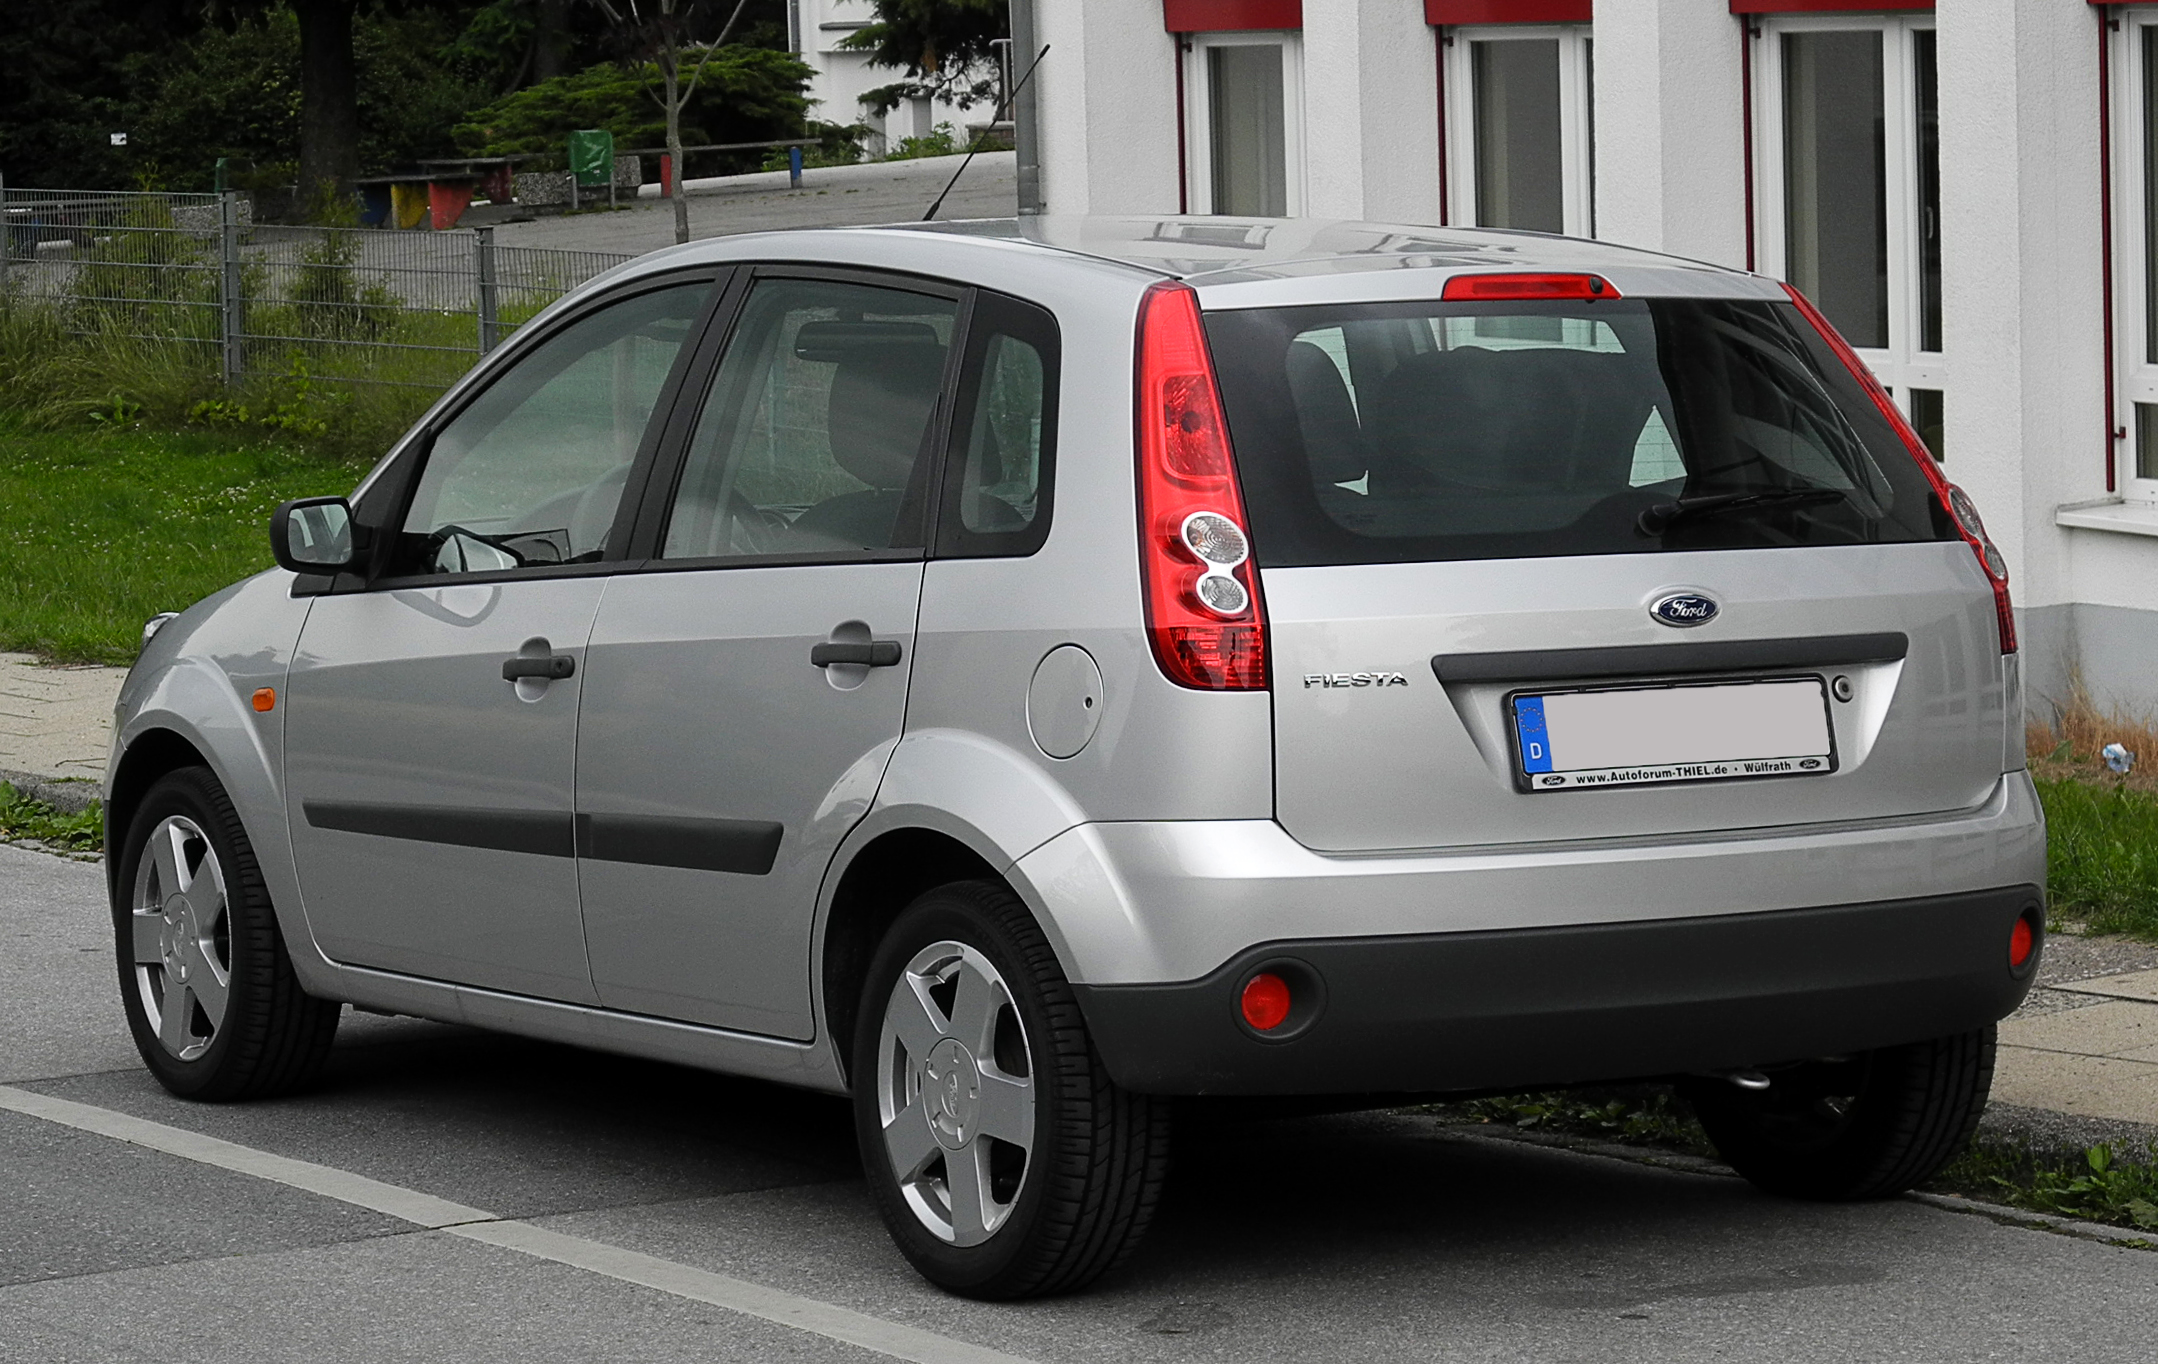 datei ford fiesta vi facelift heckansicht 17 juni 2011 w wikipedia. Black Bedroom Furniture Sets. Home Design Ideas